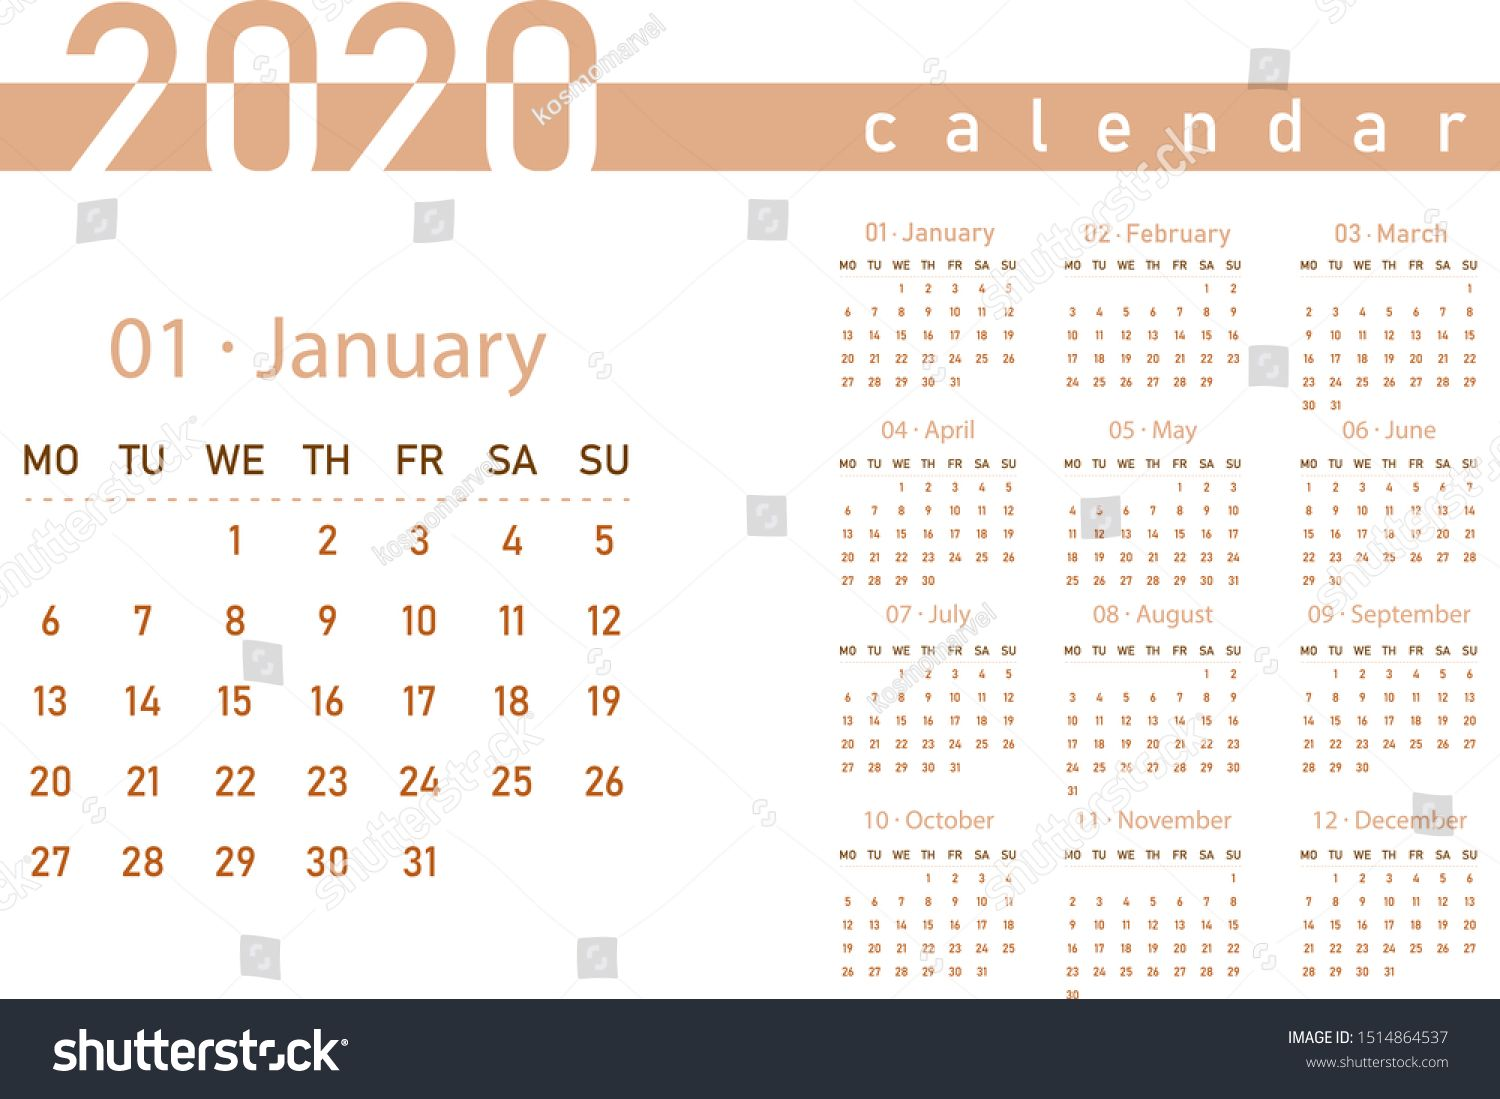 Calendar 2020 Year Grid Design Isolated On White Background